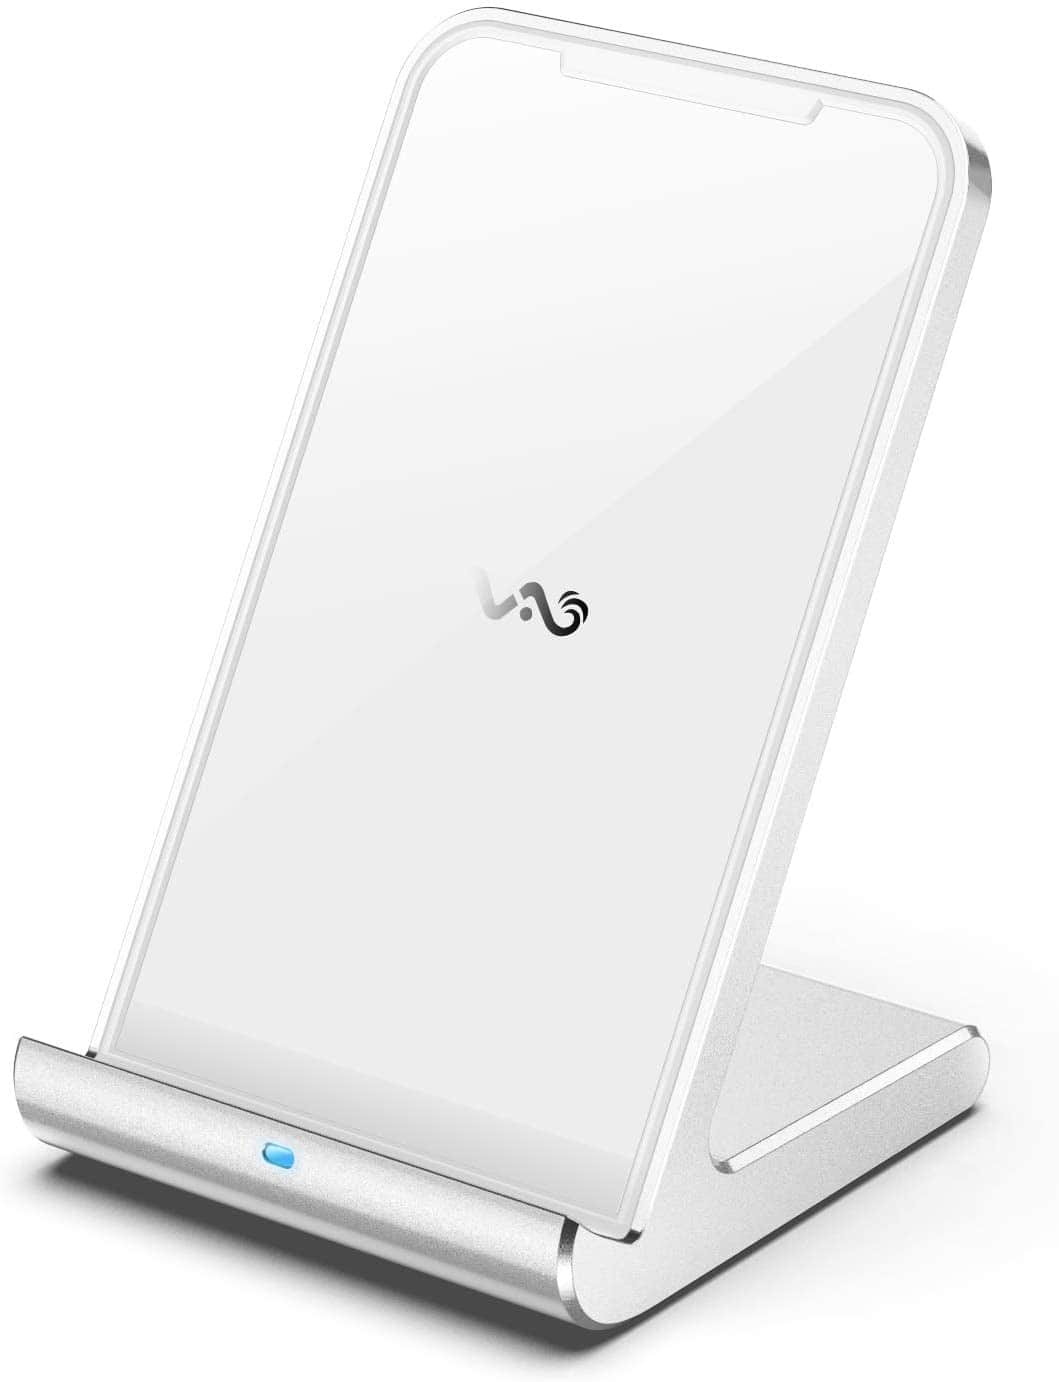 USB C Qi Certified Wireless Charging Stand for iPhone and Android $13 AC & Free Shipping